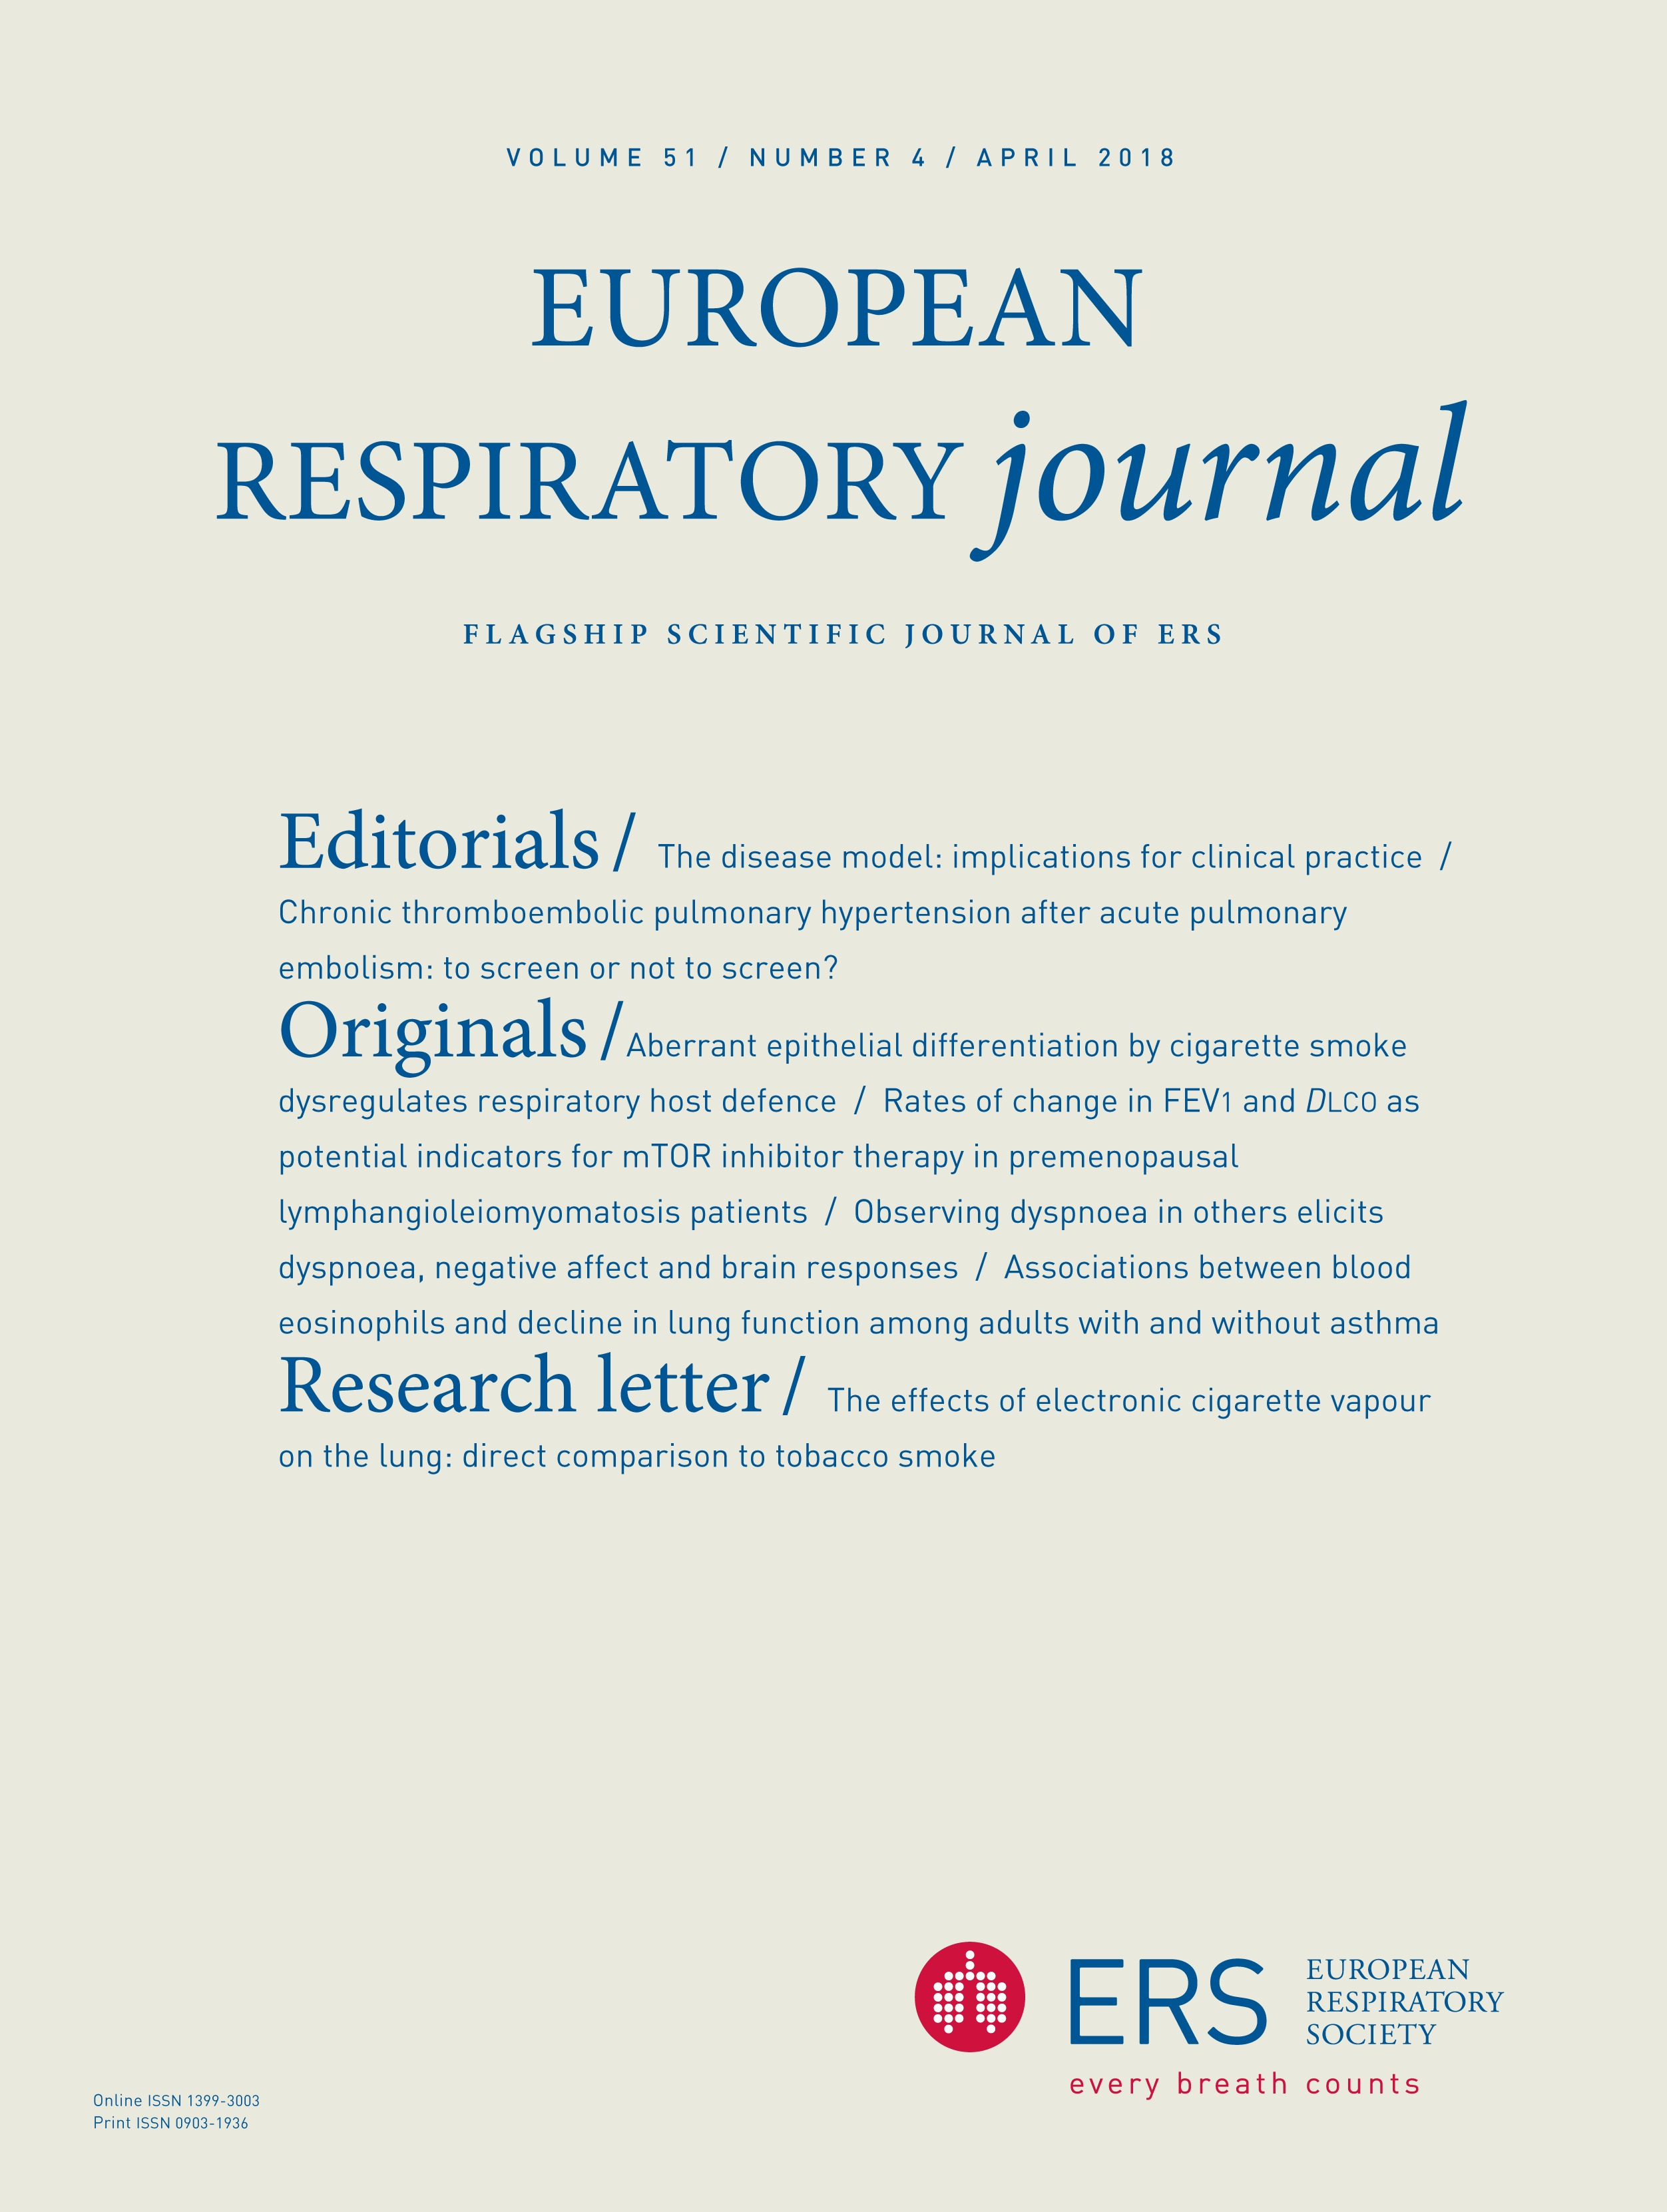 126616febe35 A novel piperidine identified by stem cell-based screening attenuates  pulmonary arterial hypertension by regulating BMP2 and PTGS2 levels |  European ...